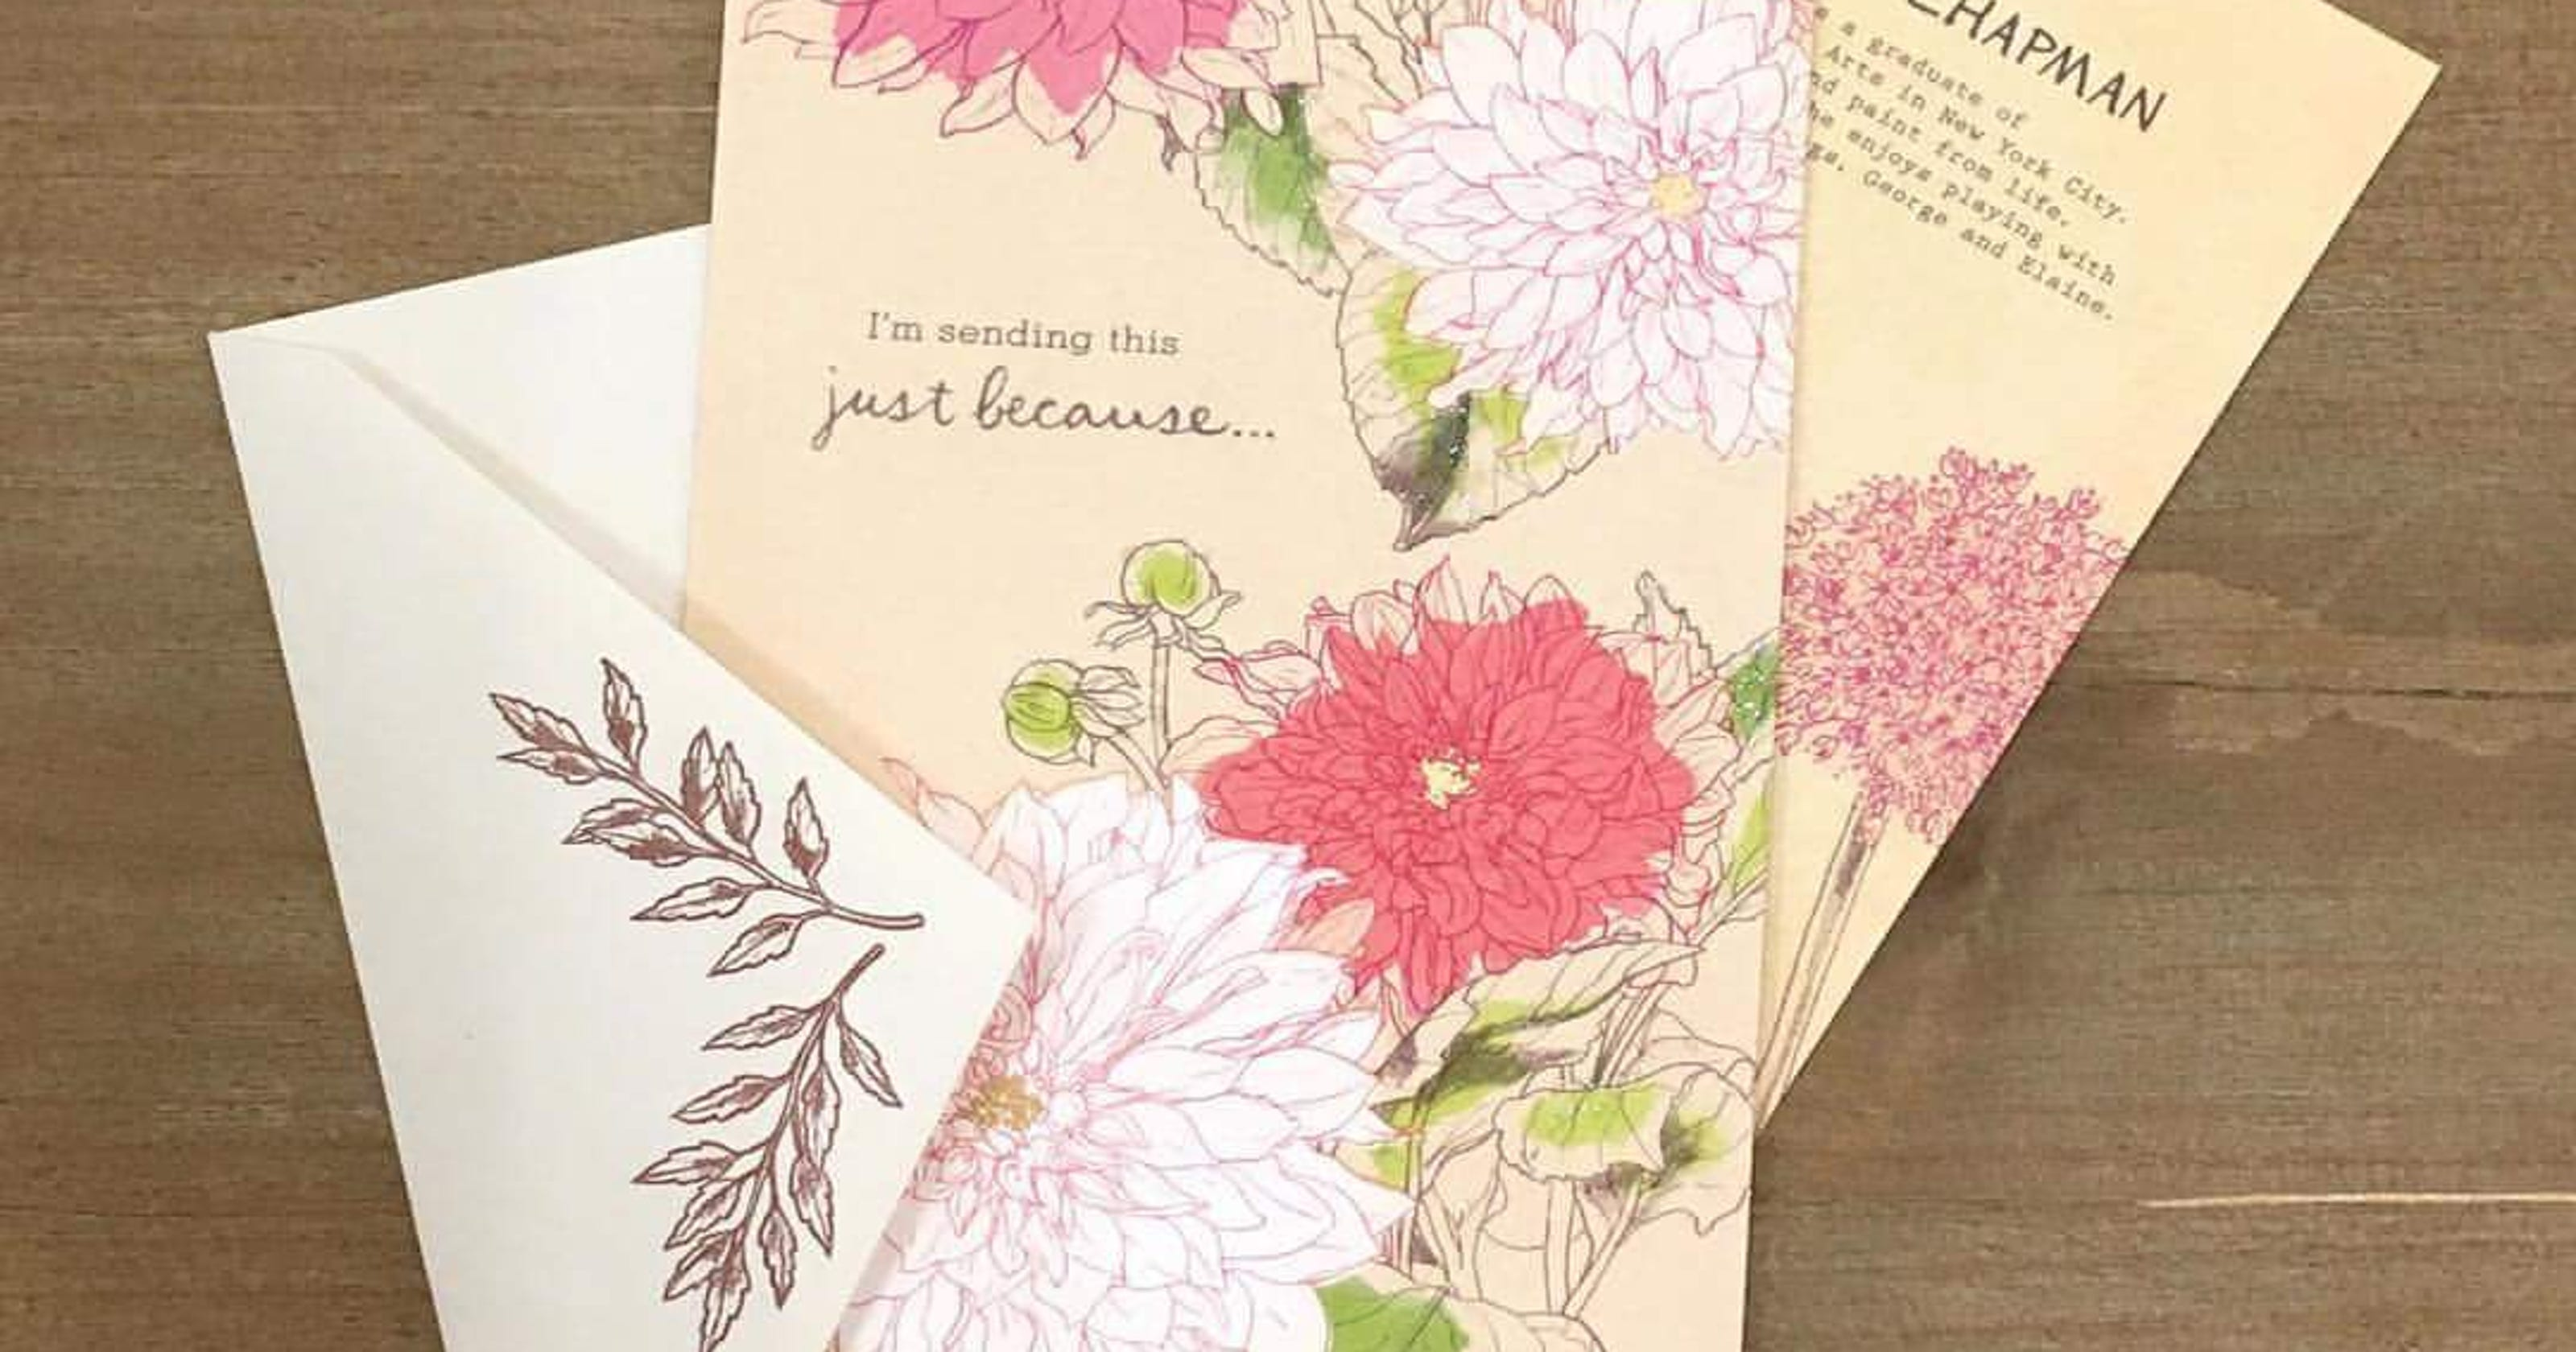 Bryant Fairport Grads Art Featured On Greeting Cards